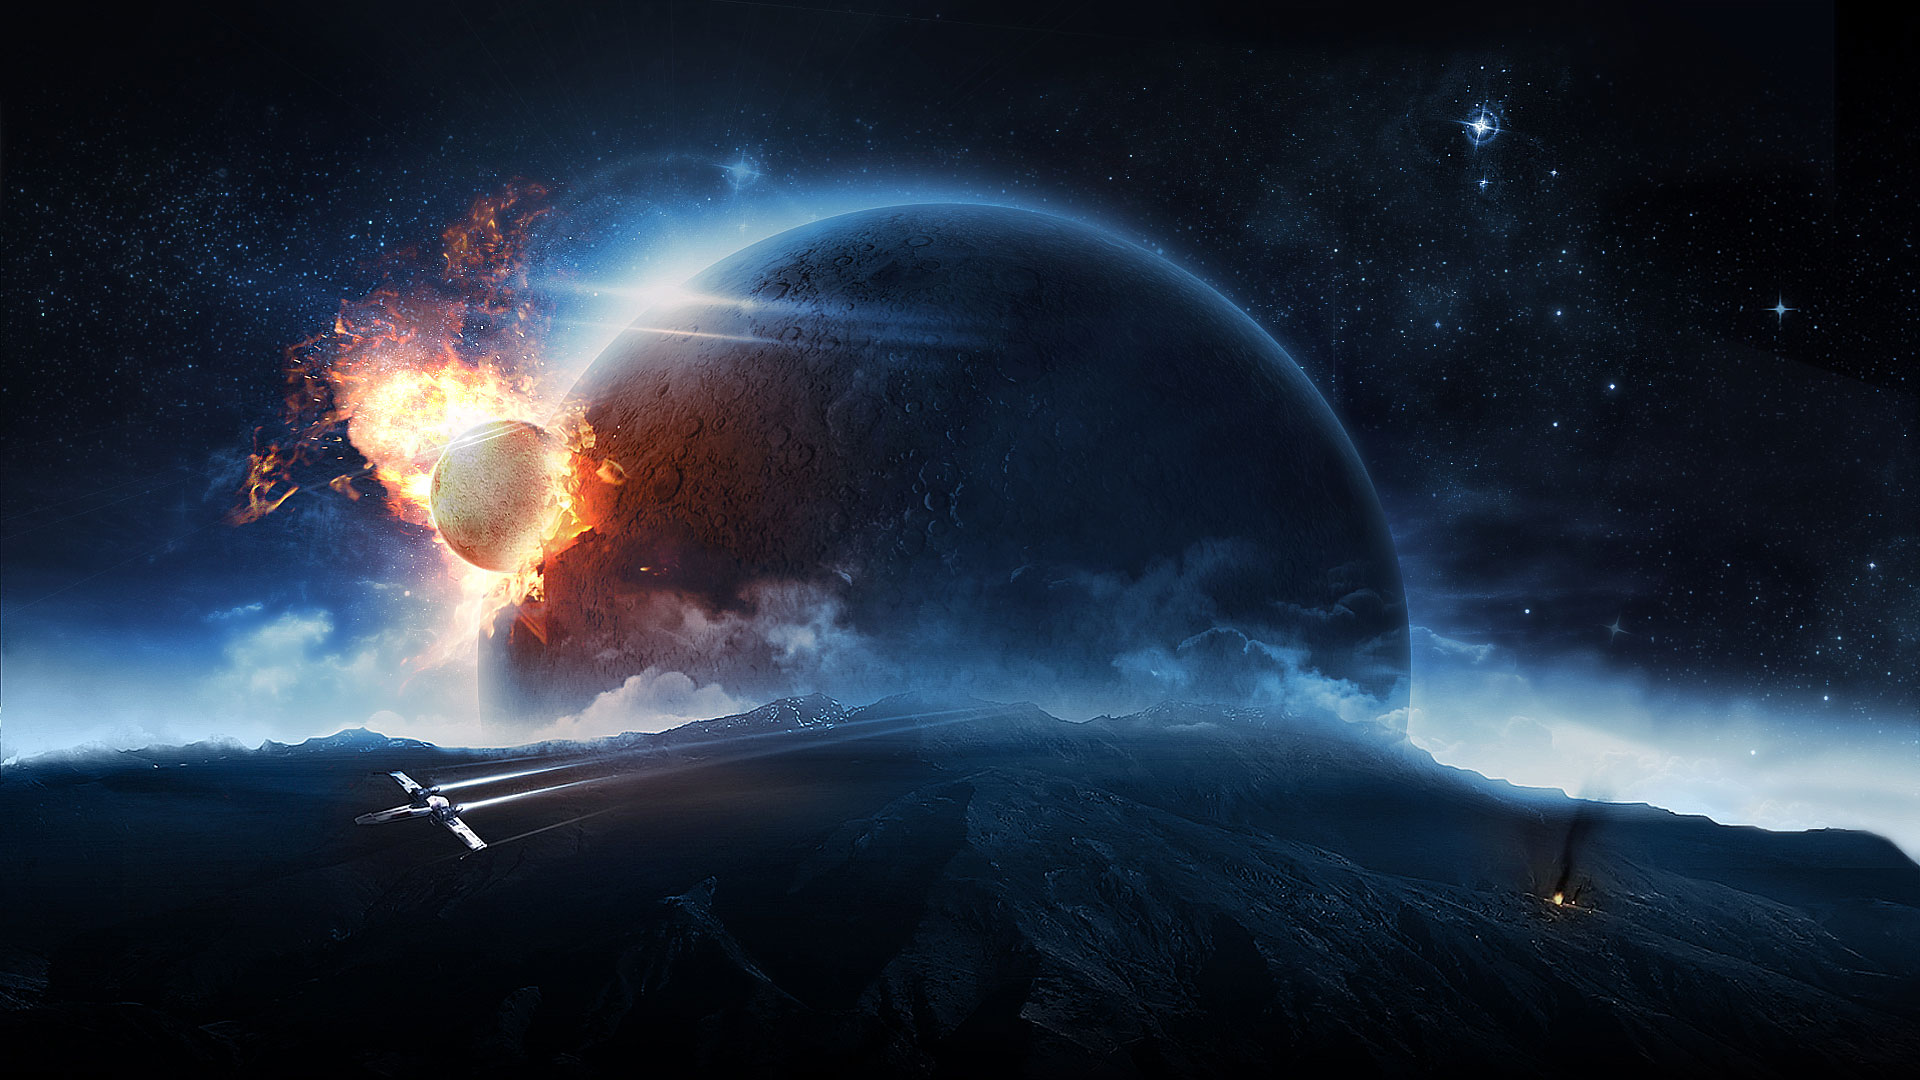 Sci fi space battle wallpaper